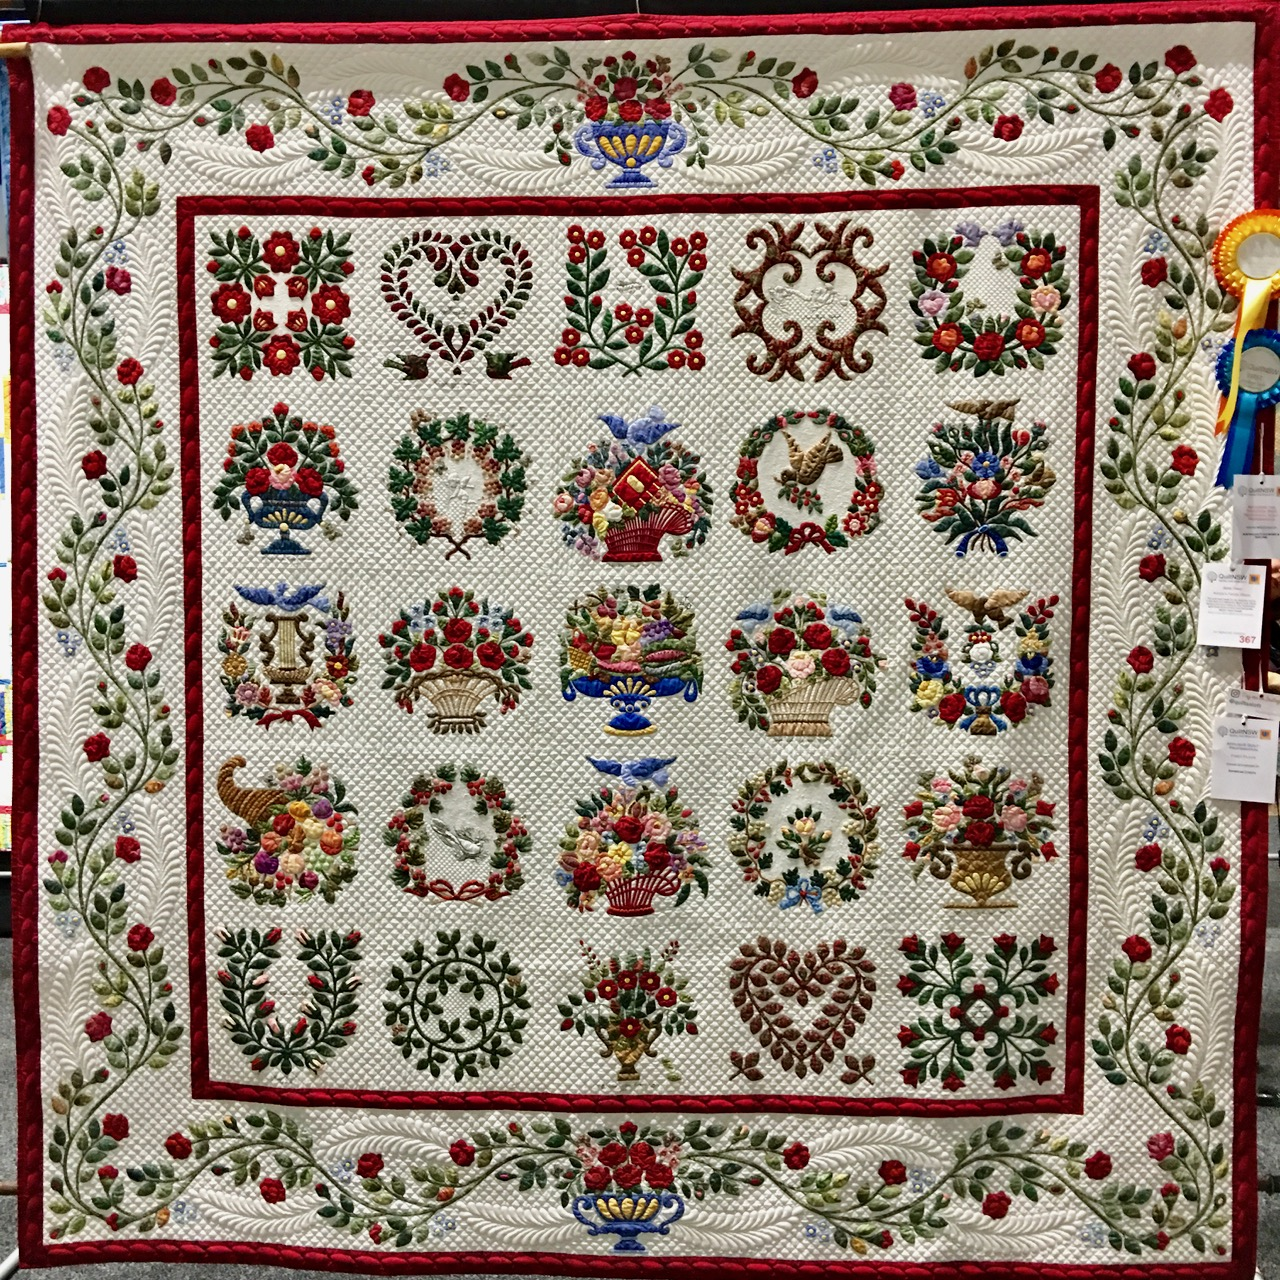 Amazing Quilts: More Amazing Quilts From The 2017 Sydney Quilt Show